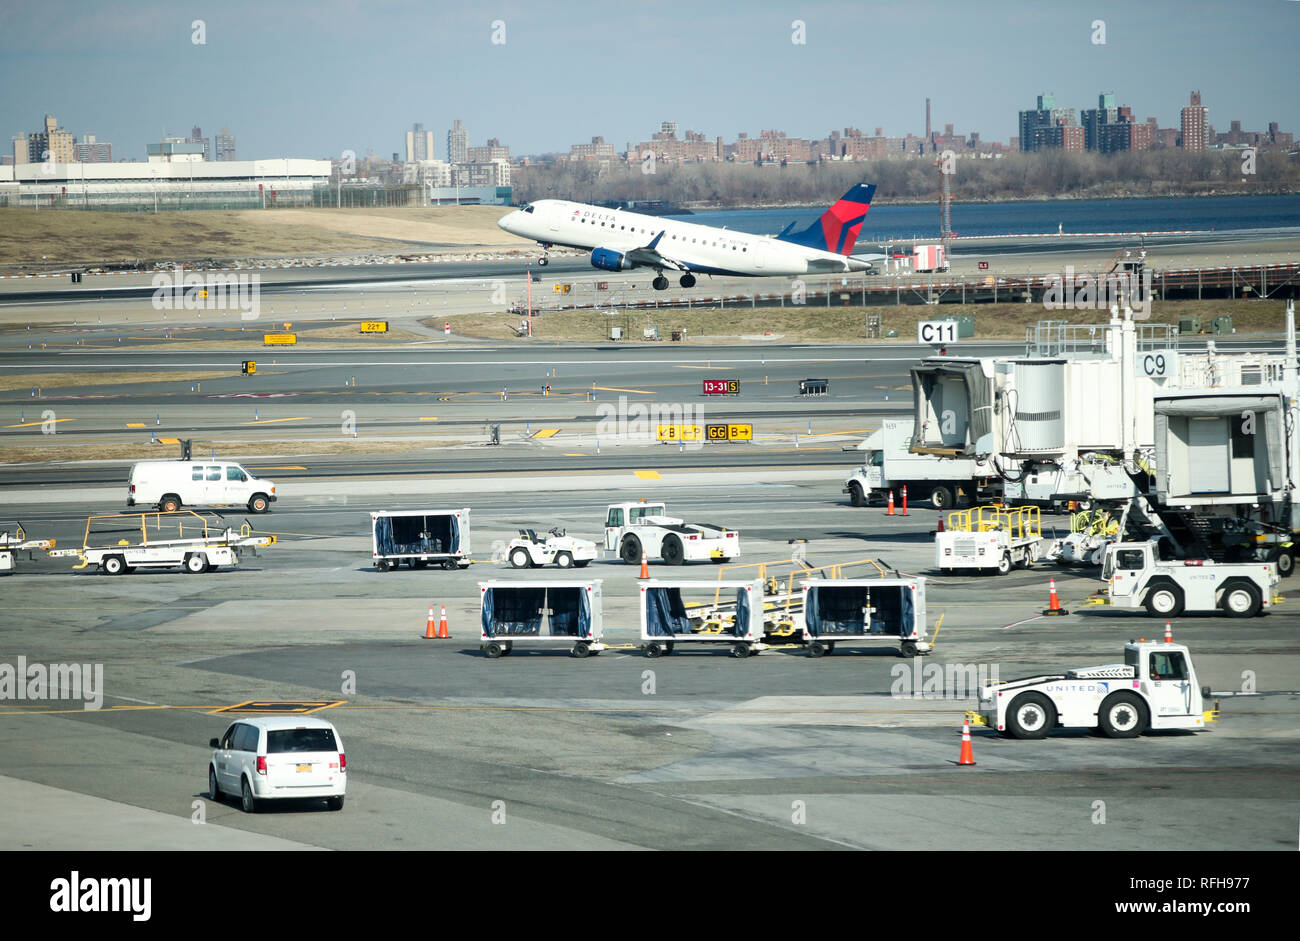 New York, USA. 25th Jan, 2019. Vehicles are seen at the LaGuardia Airport in New York, the United States, on Jan. 25, 2019. The U.S. Federal Aviation Administration on Friday halted flights bound for New York City's LaGuardia Airport, due to staff shortage caused by the historic government shutdown. Credit: Wang Ying/Xinhua/Alamy Live News - Stock Image